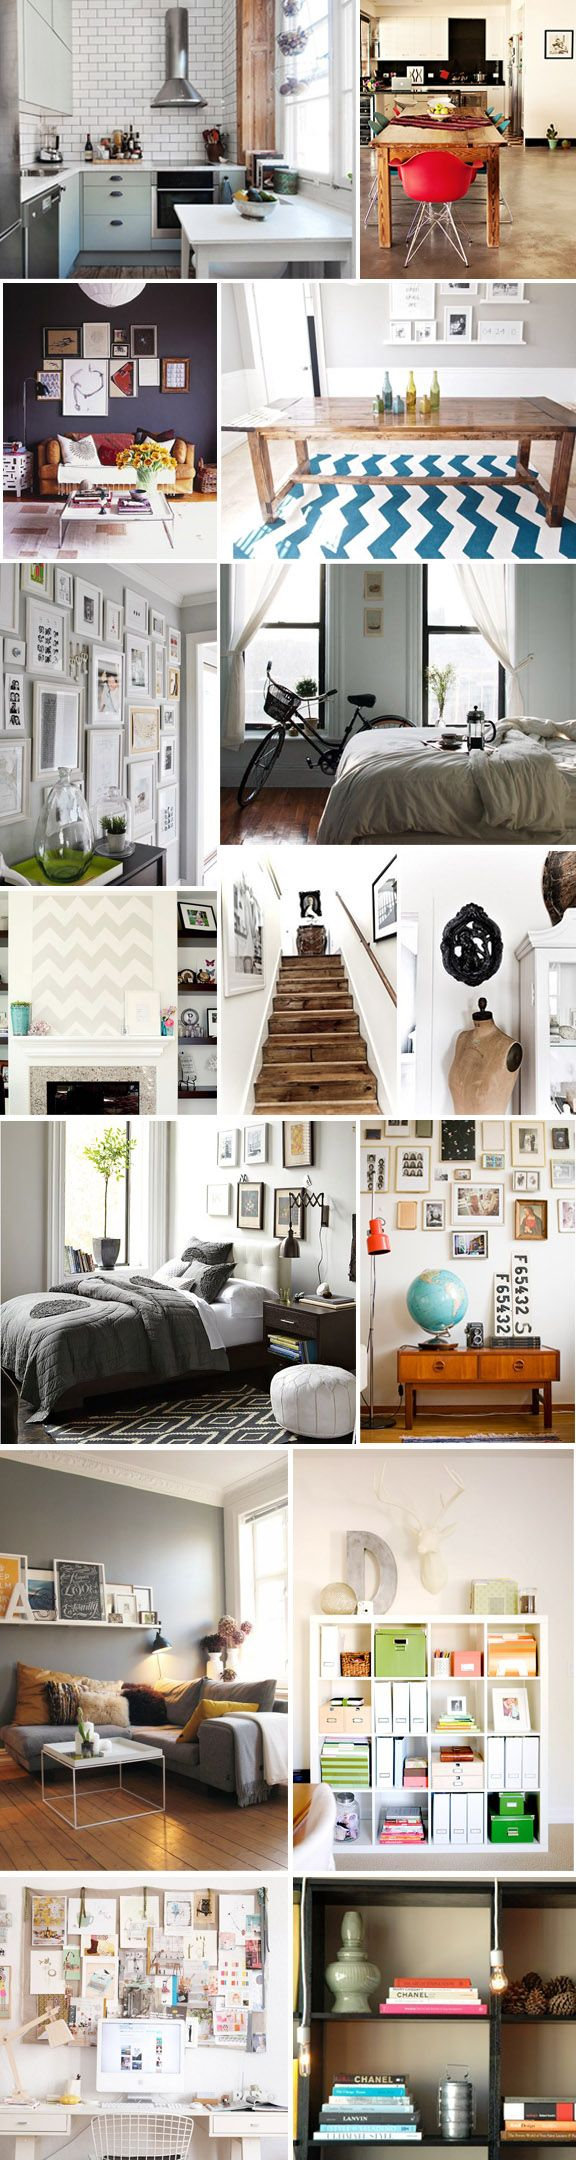 Need inspiration tips for your next home project pin away visit us at www in for more home decor tips inside outside is indias oldest design magazine